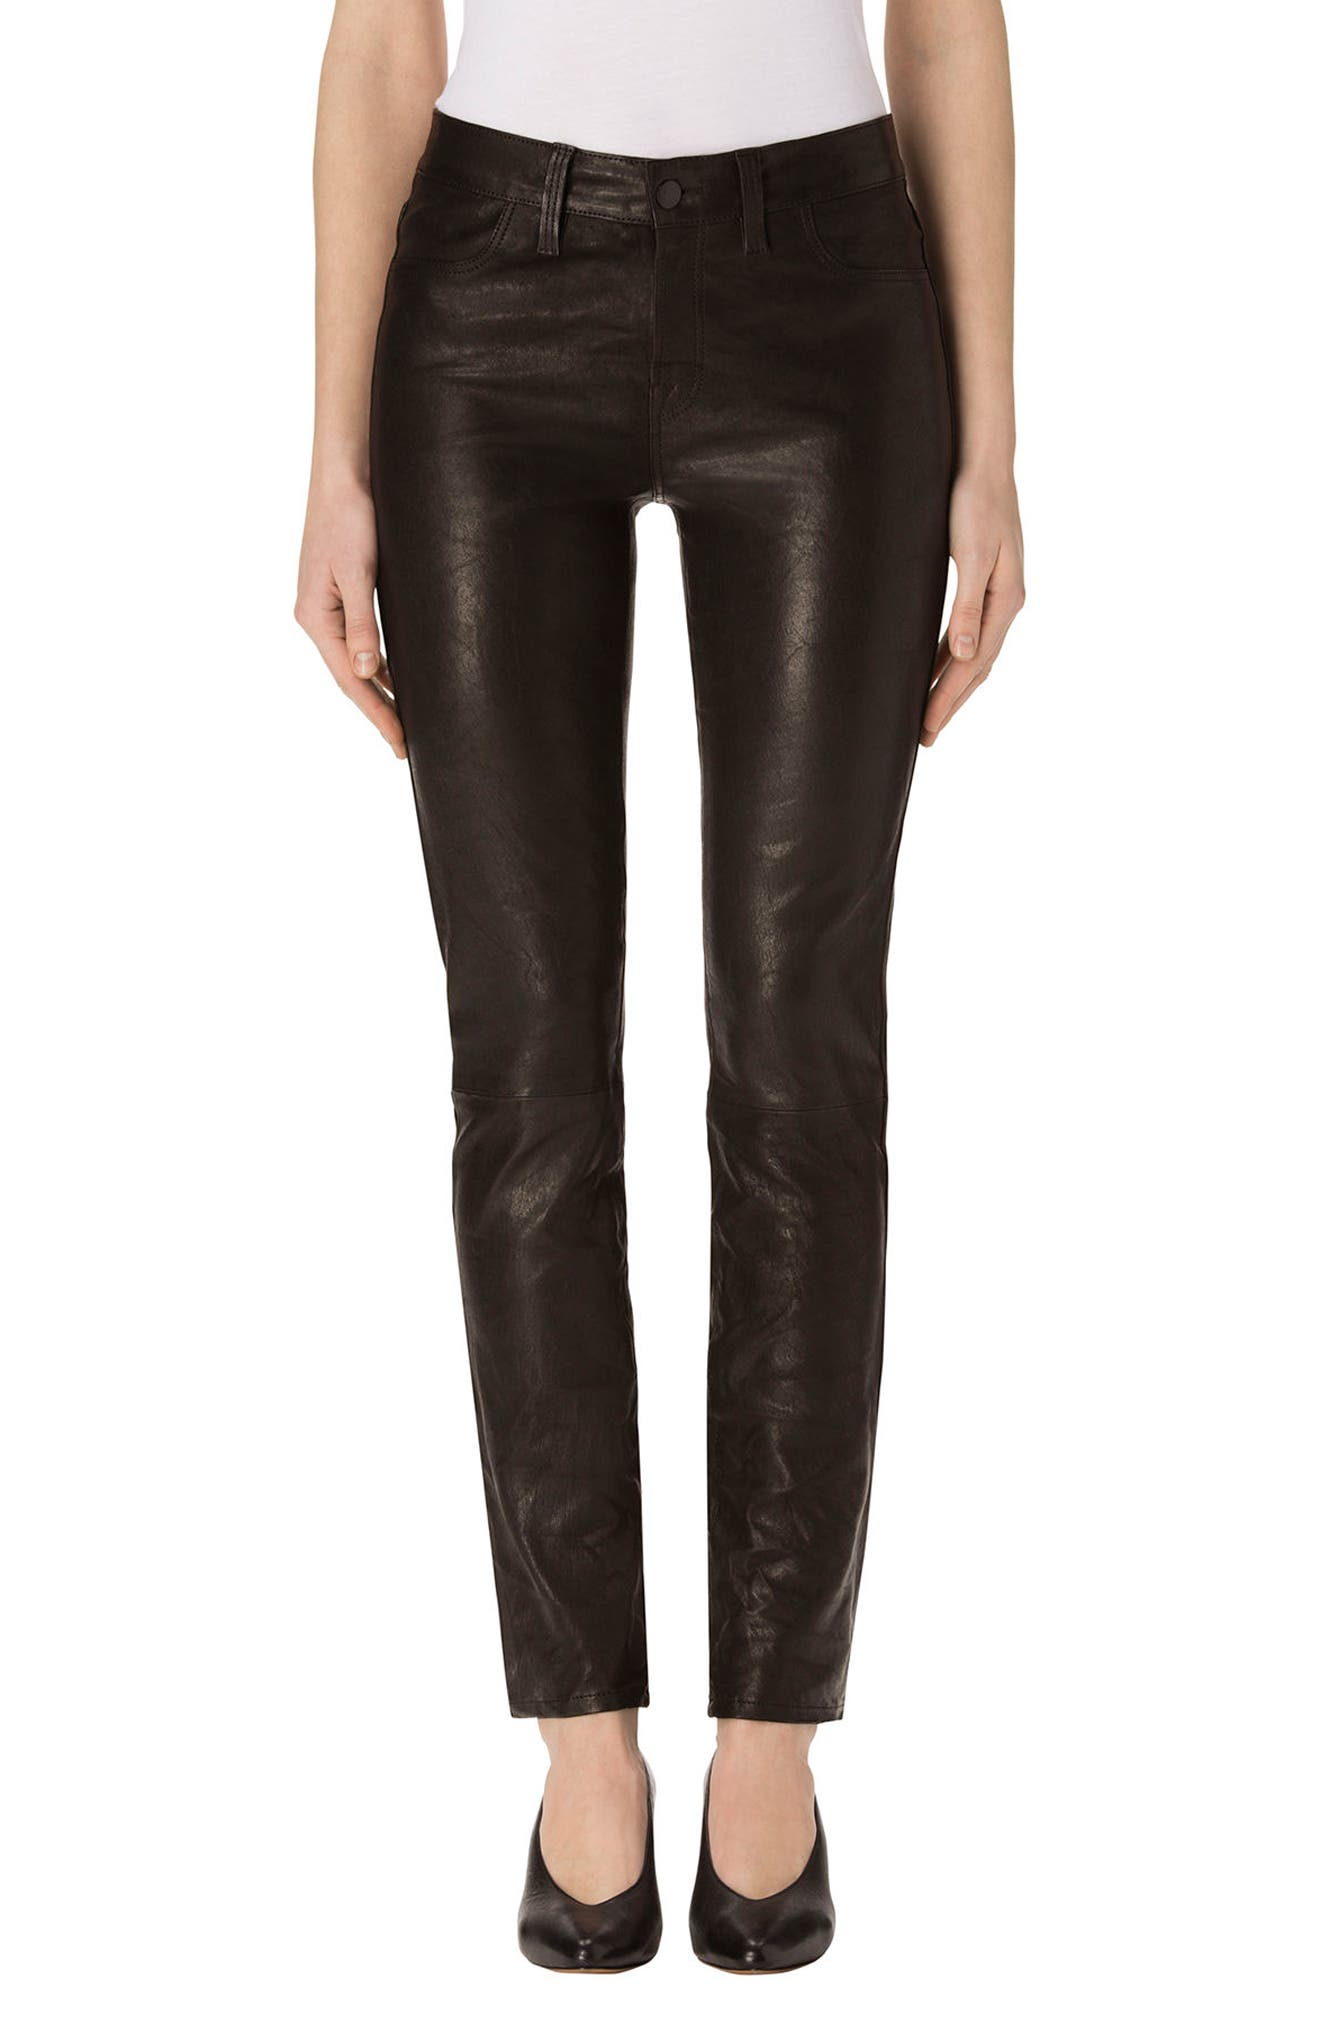 J Brand Maude Leather Cigarette Pants